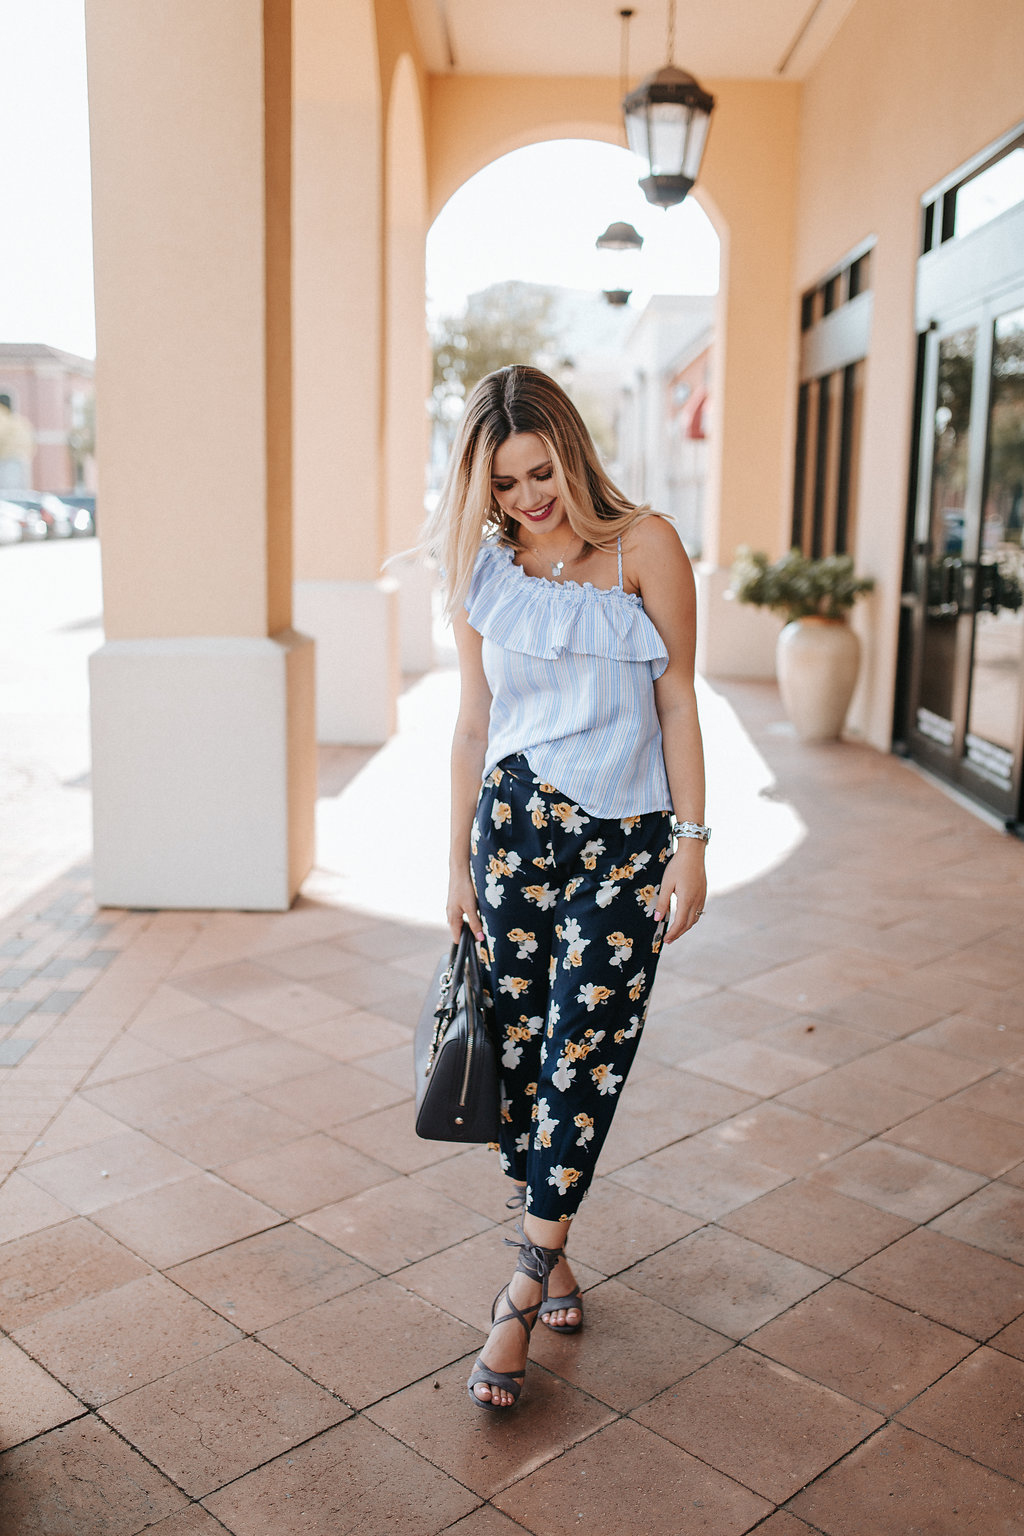 How to wear Floral pants | Target outfit | J by J.O.A Target | Uptown with Elly Brown